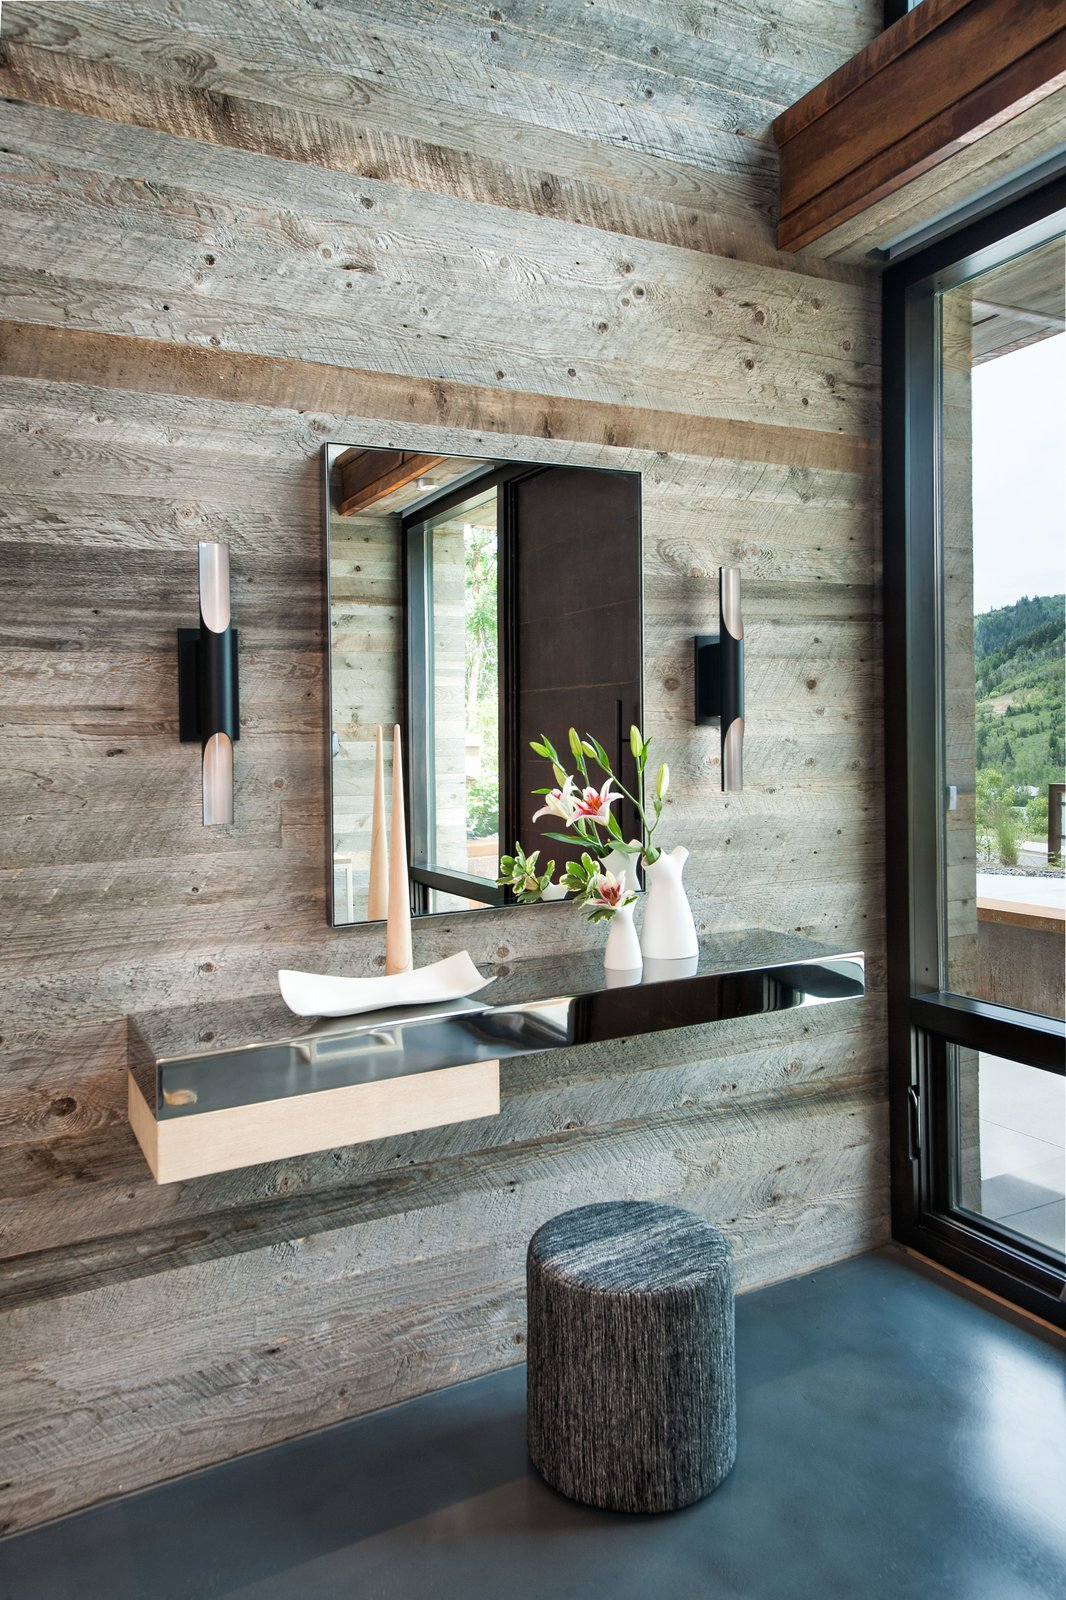 Rustic wood + hard metals  Lighting: Halfpipe Sconce by Boyd Lighting  60+ Modern Lighting Solutions by Dwell from Rustic Luxury